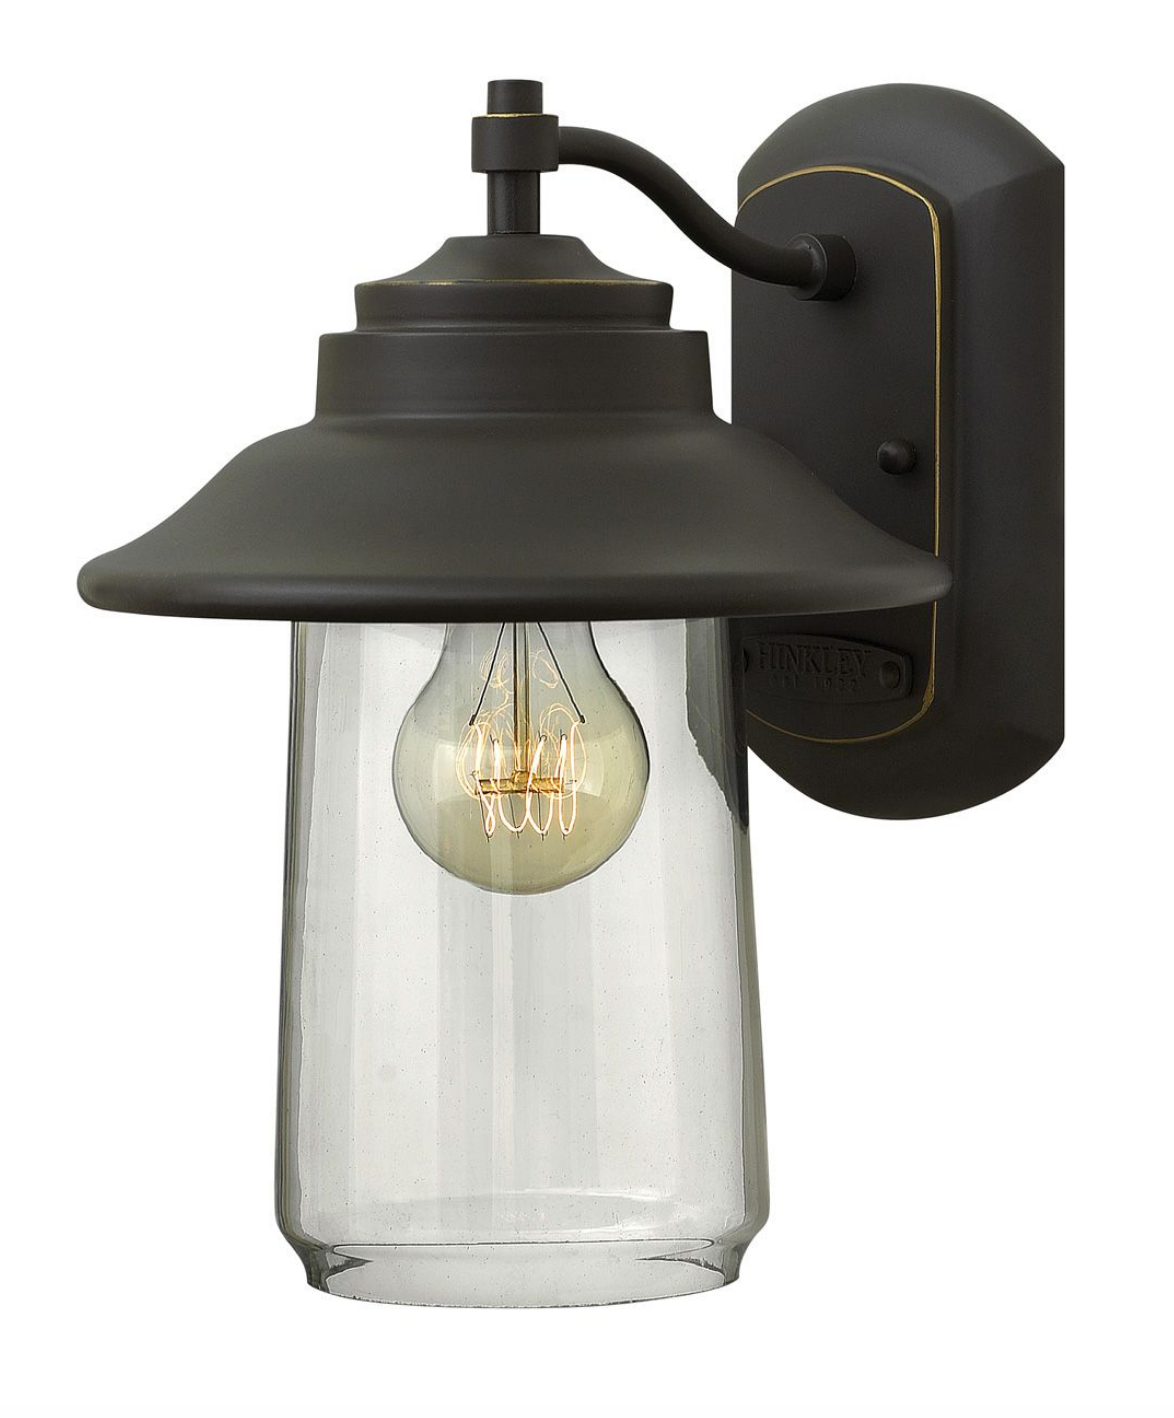 Outdoor Belden Place Wall Lantern 2860, 2864, 2865